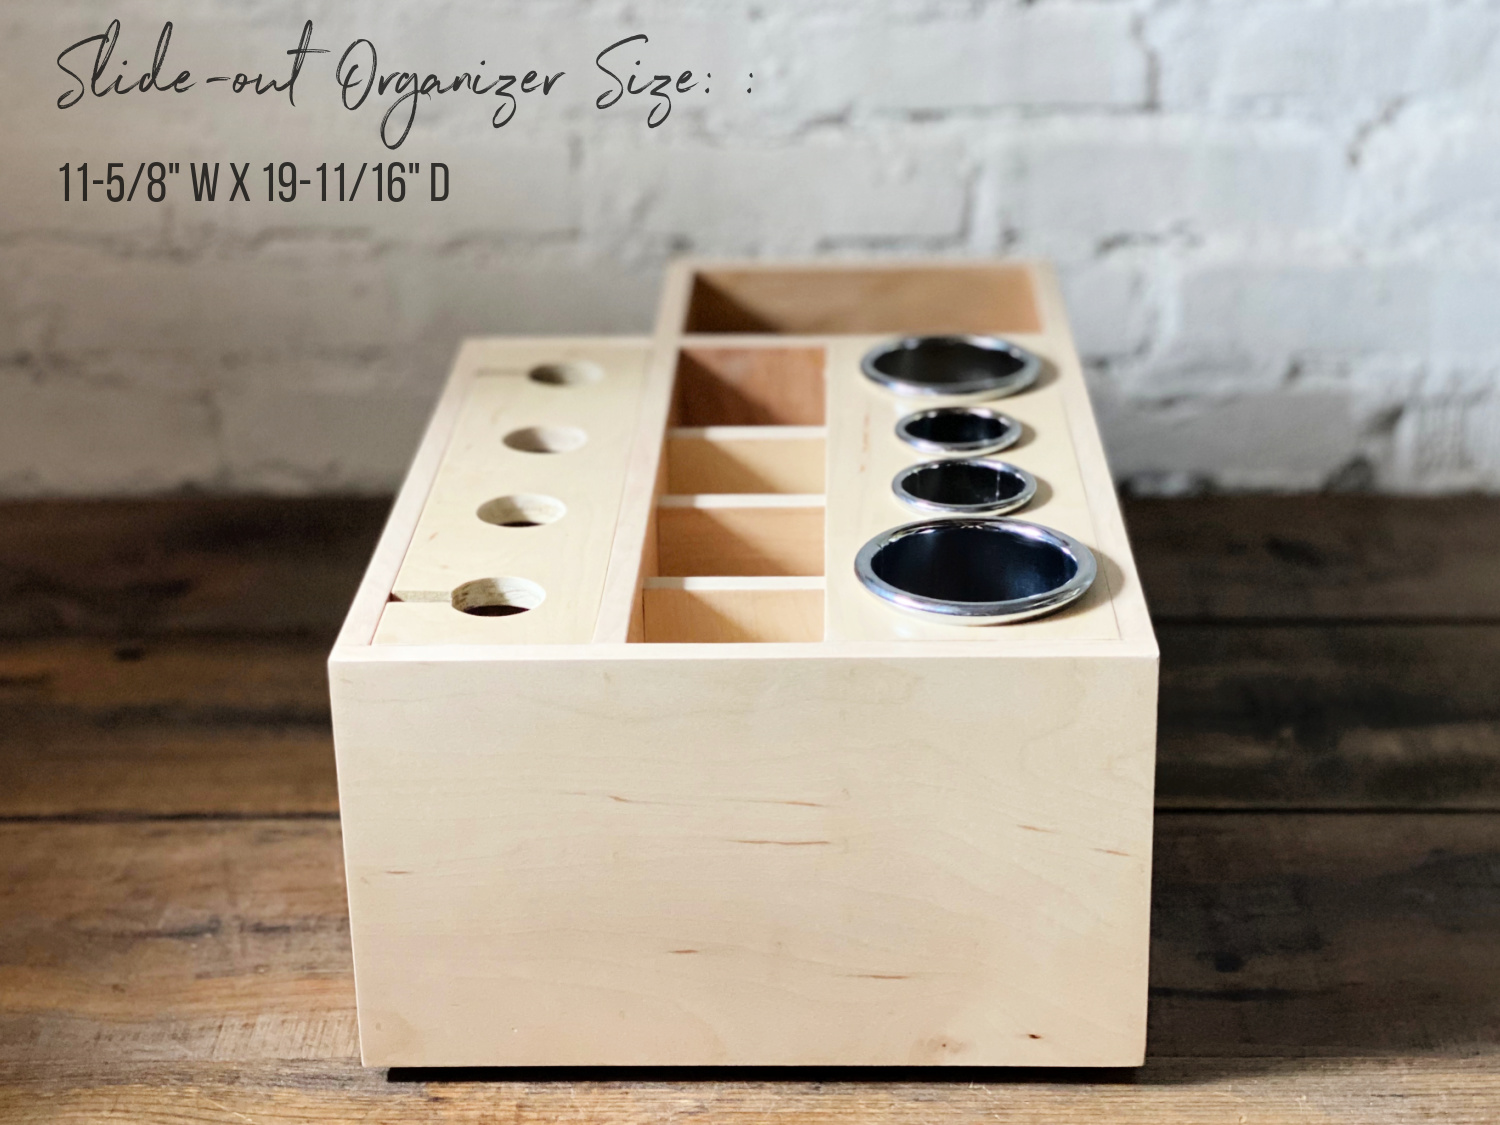 Custom Slide Out Hair Tool Organizer For Bathroom Vanity Cabinets Simplicity In The South